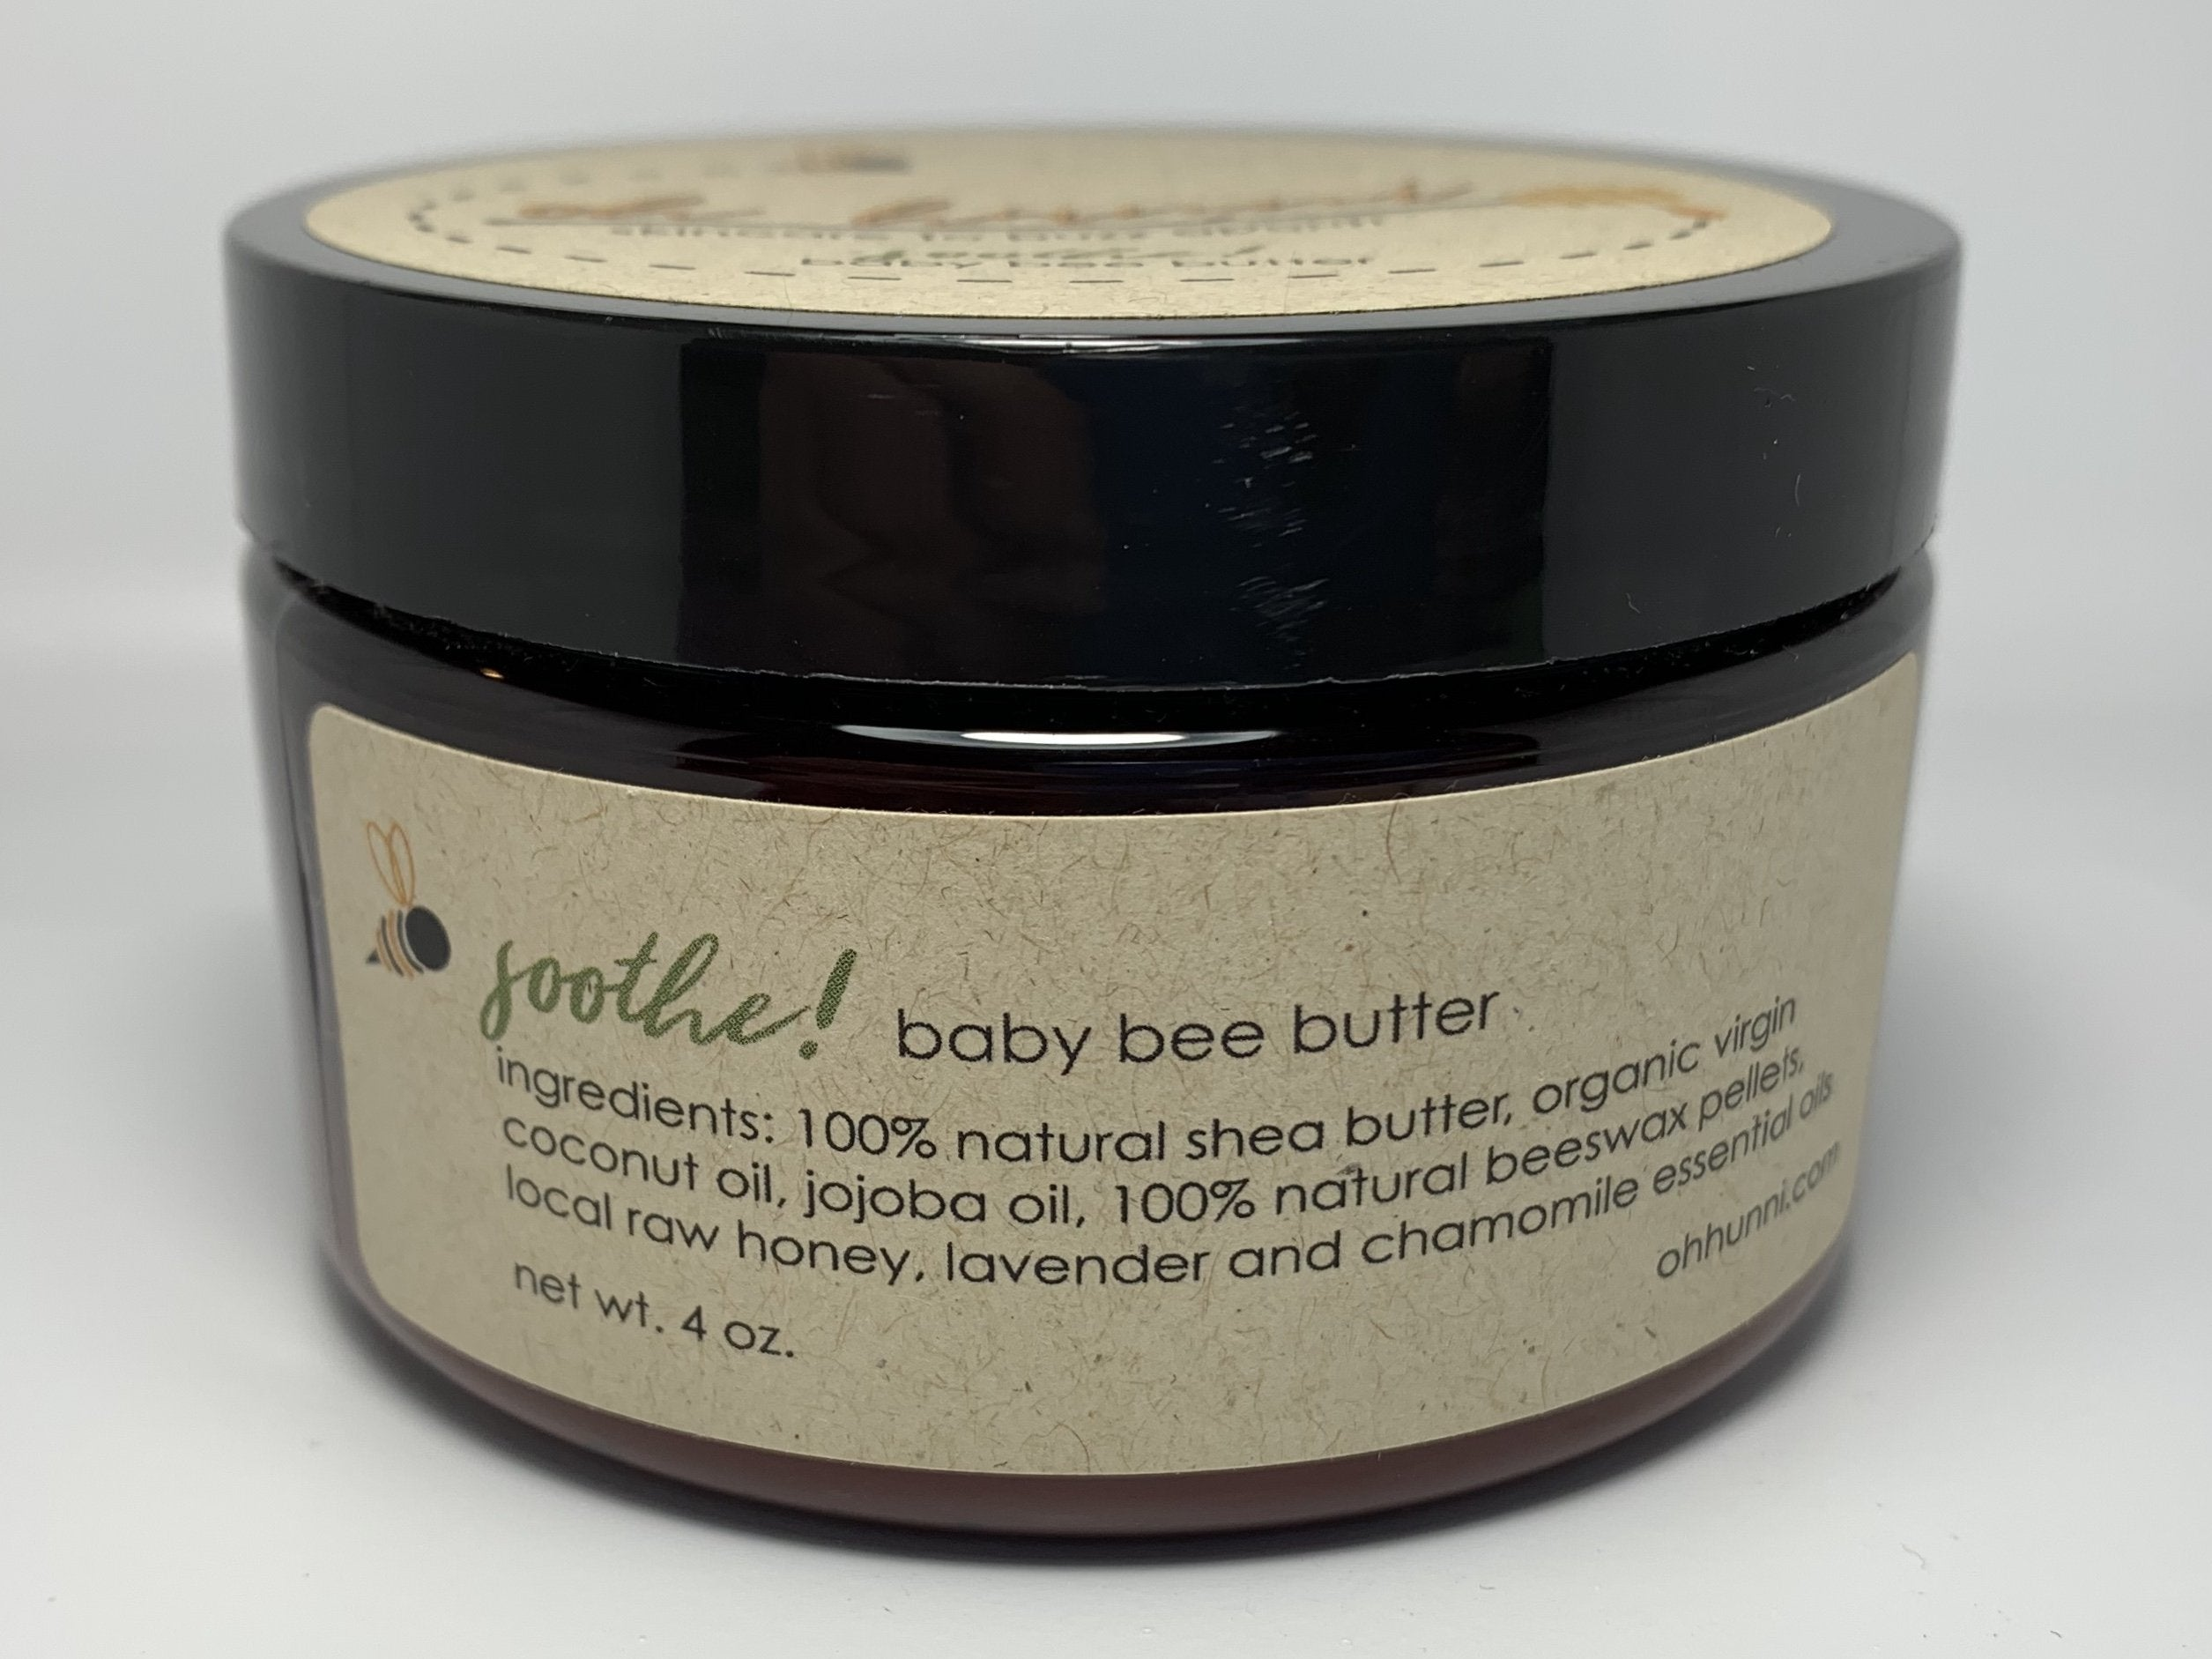 All Natural Body Butter made in the USA